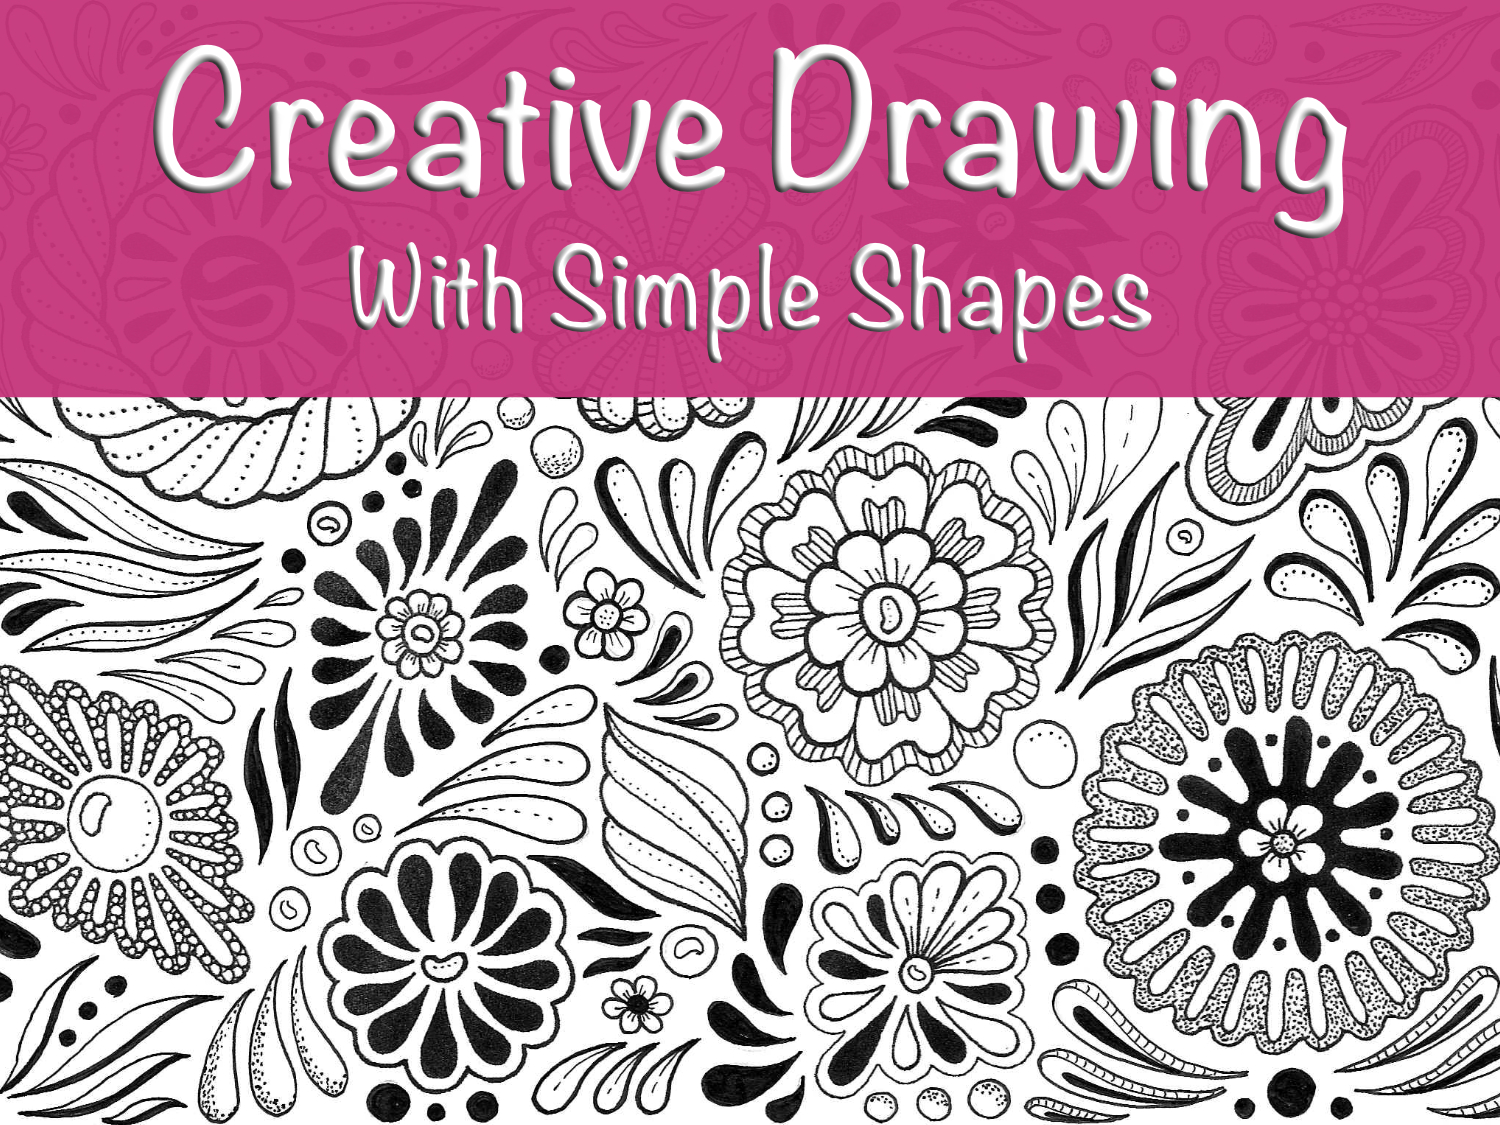 Creative Drawing With Simple Shapes JSPCREATE Course